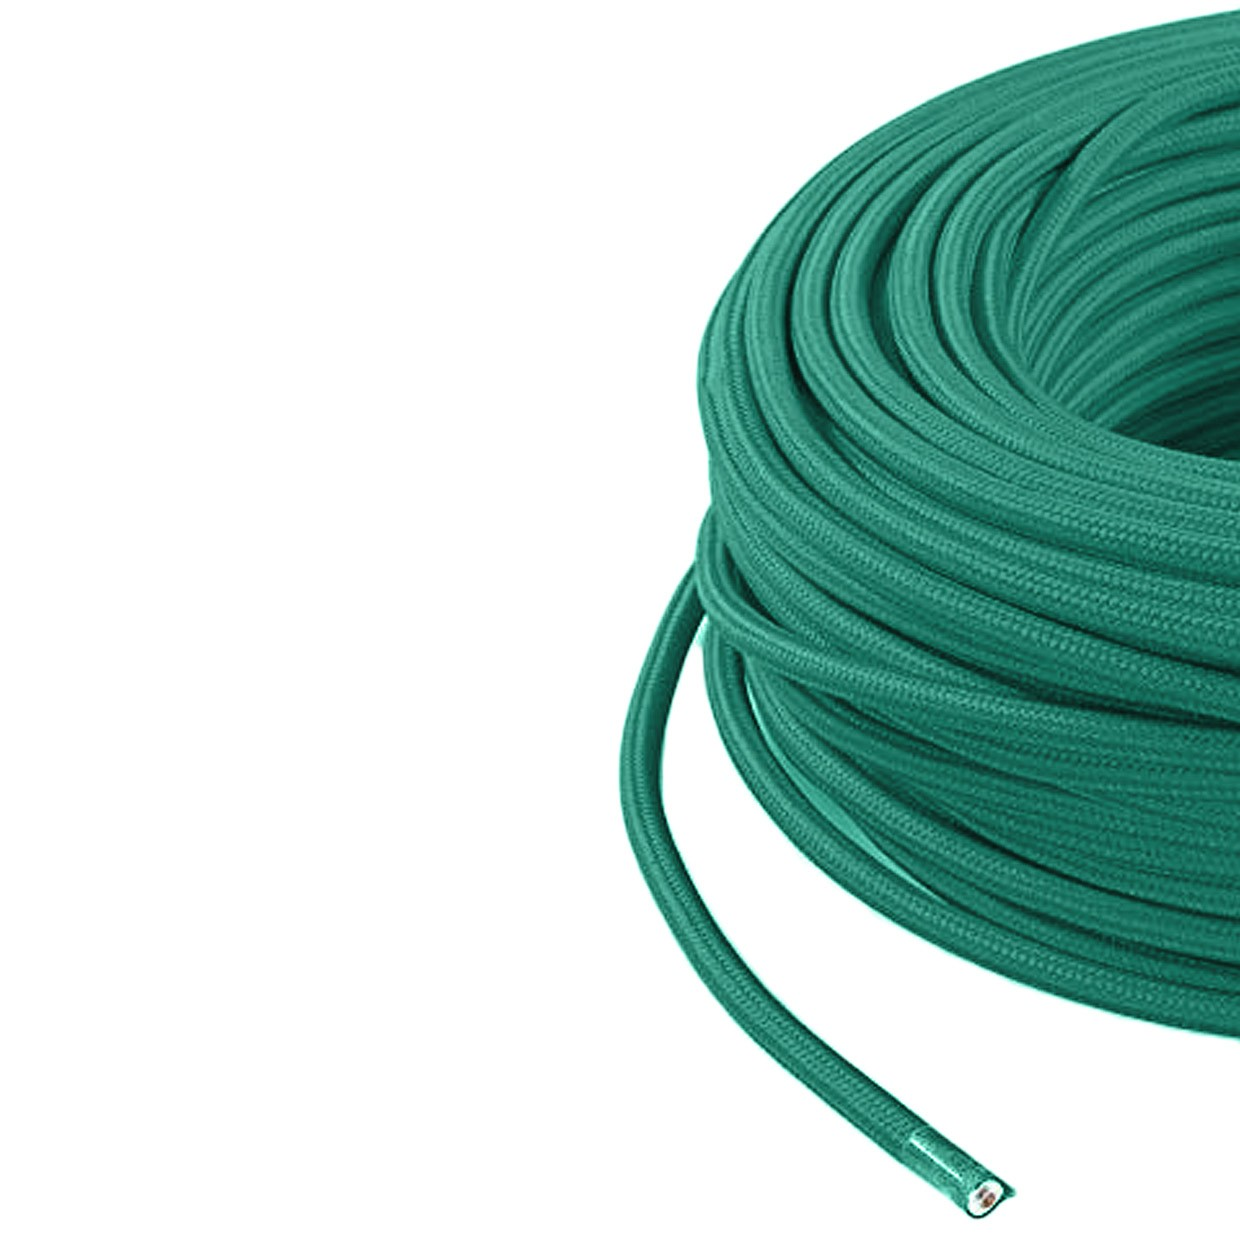 CABLE TELA  VERDE